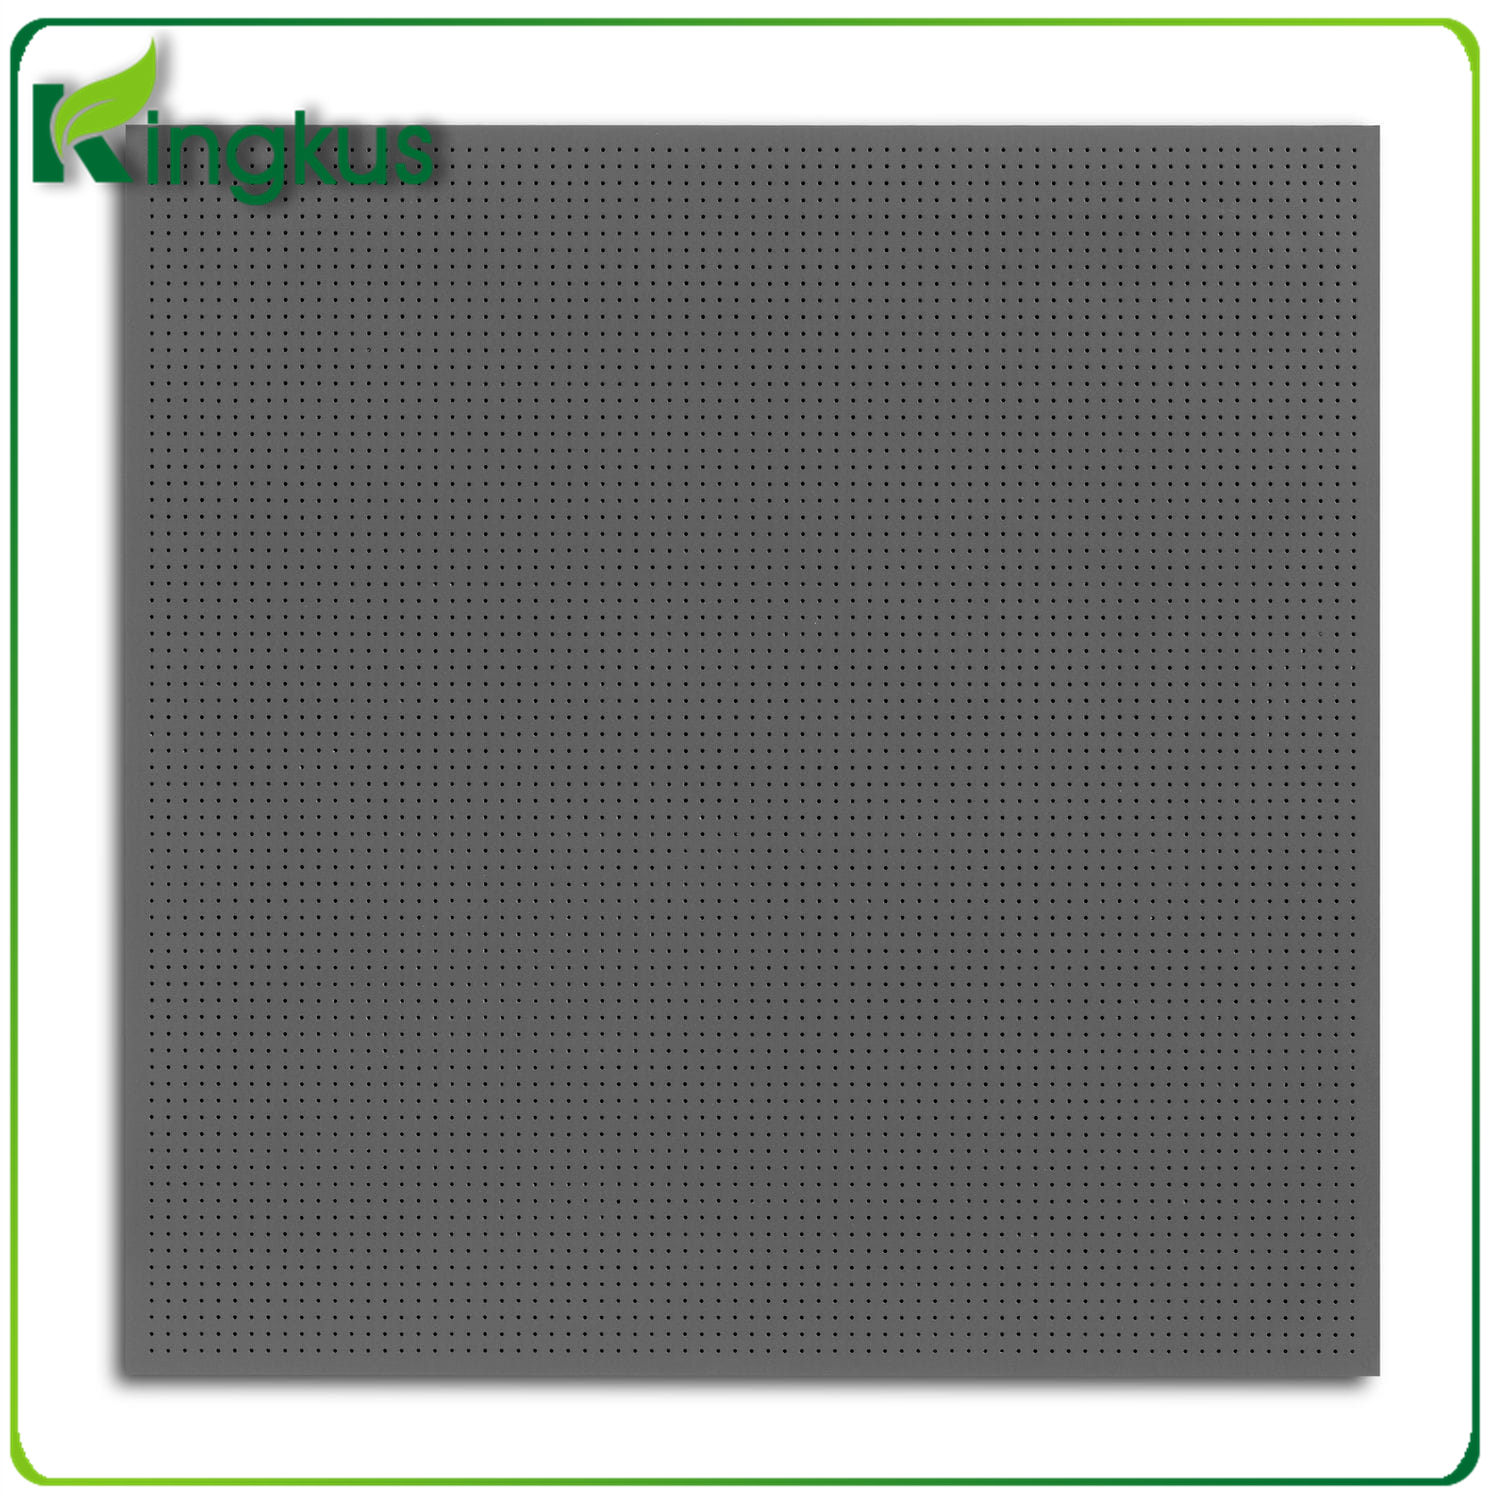 Perforated micro acoustic panel